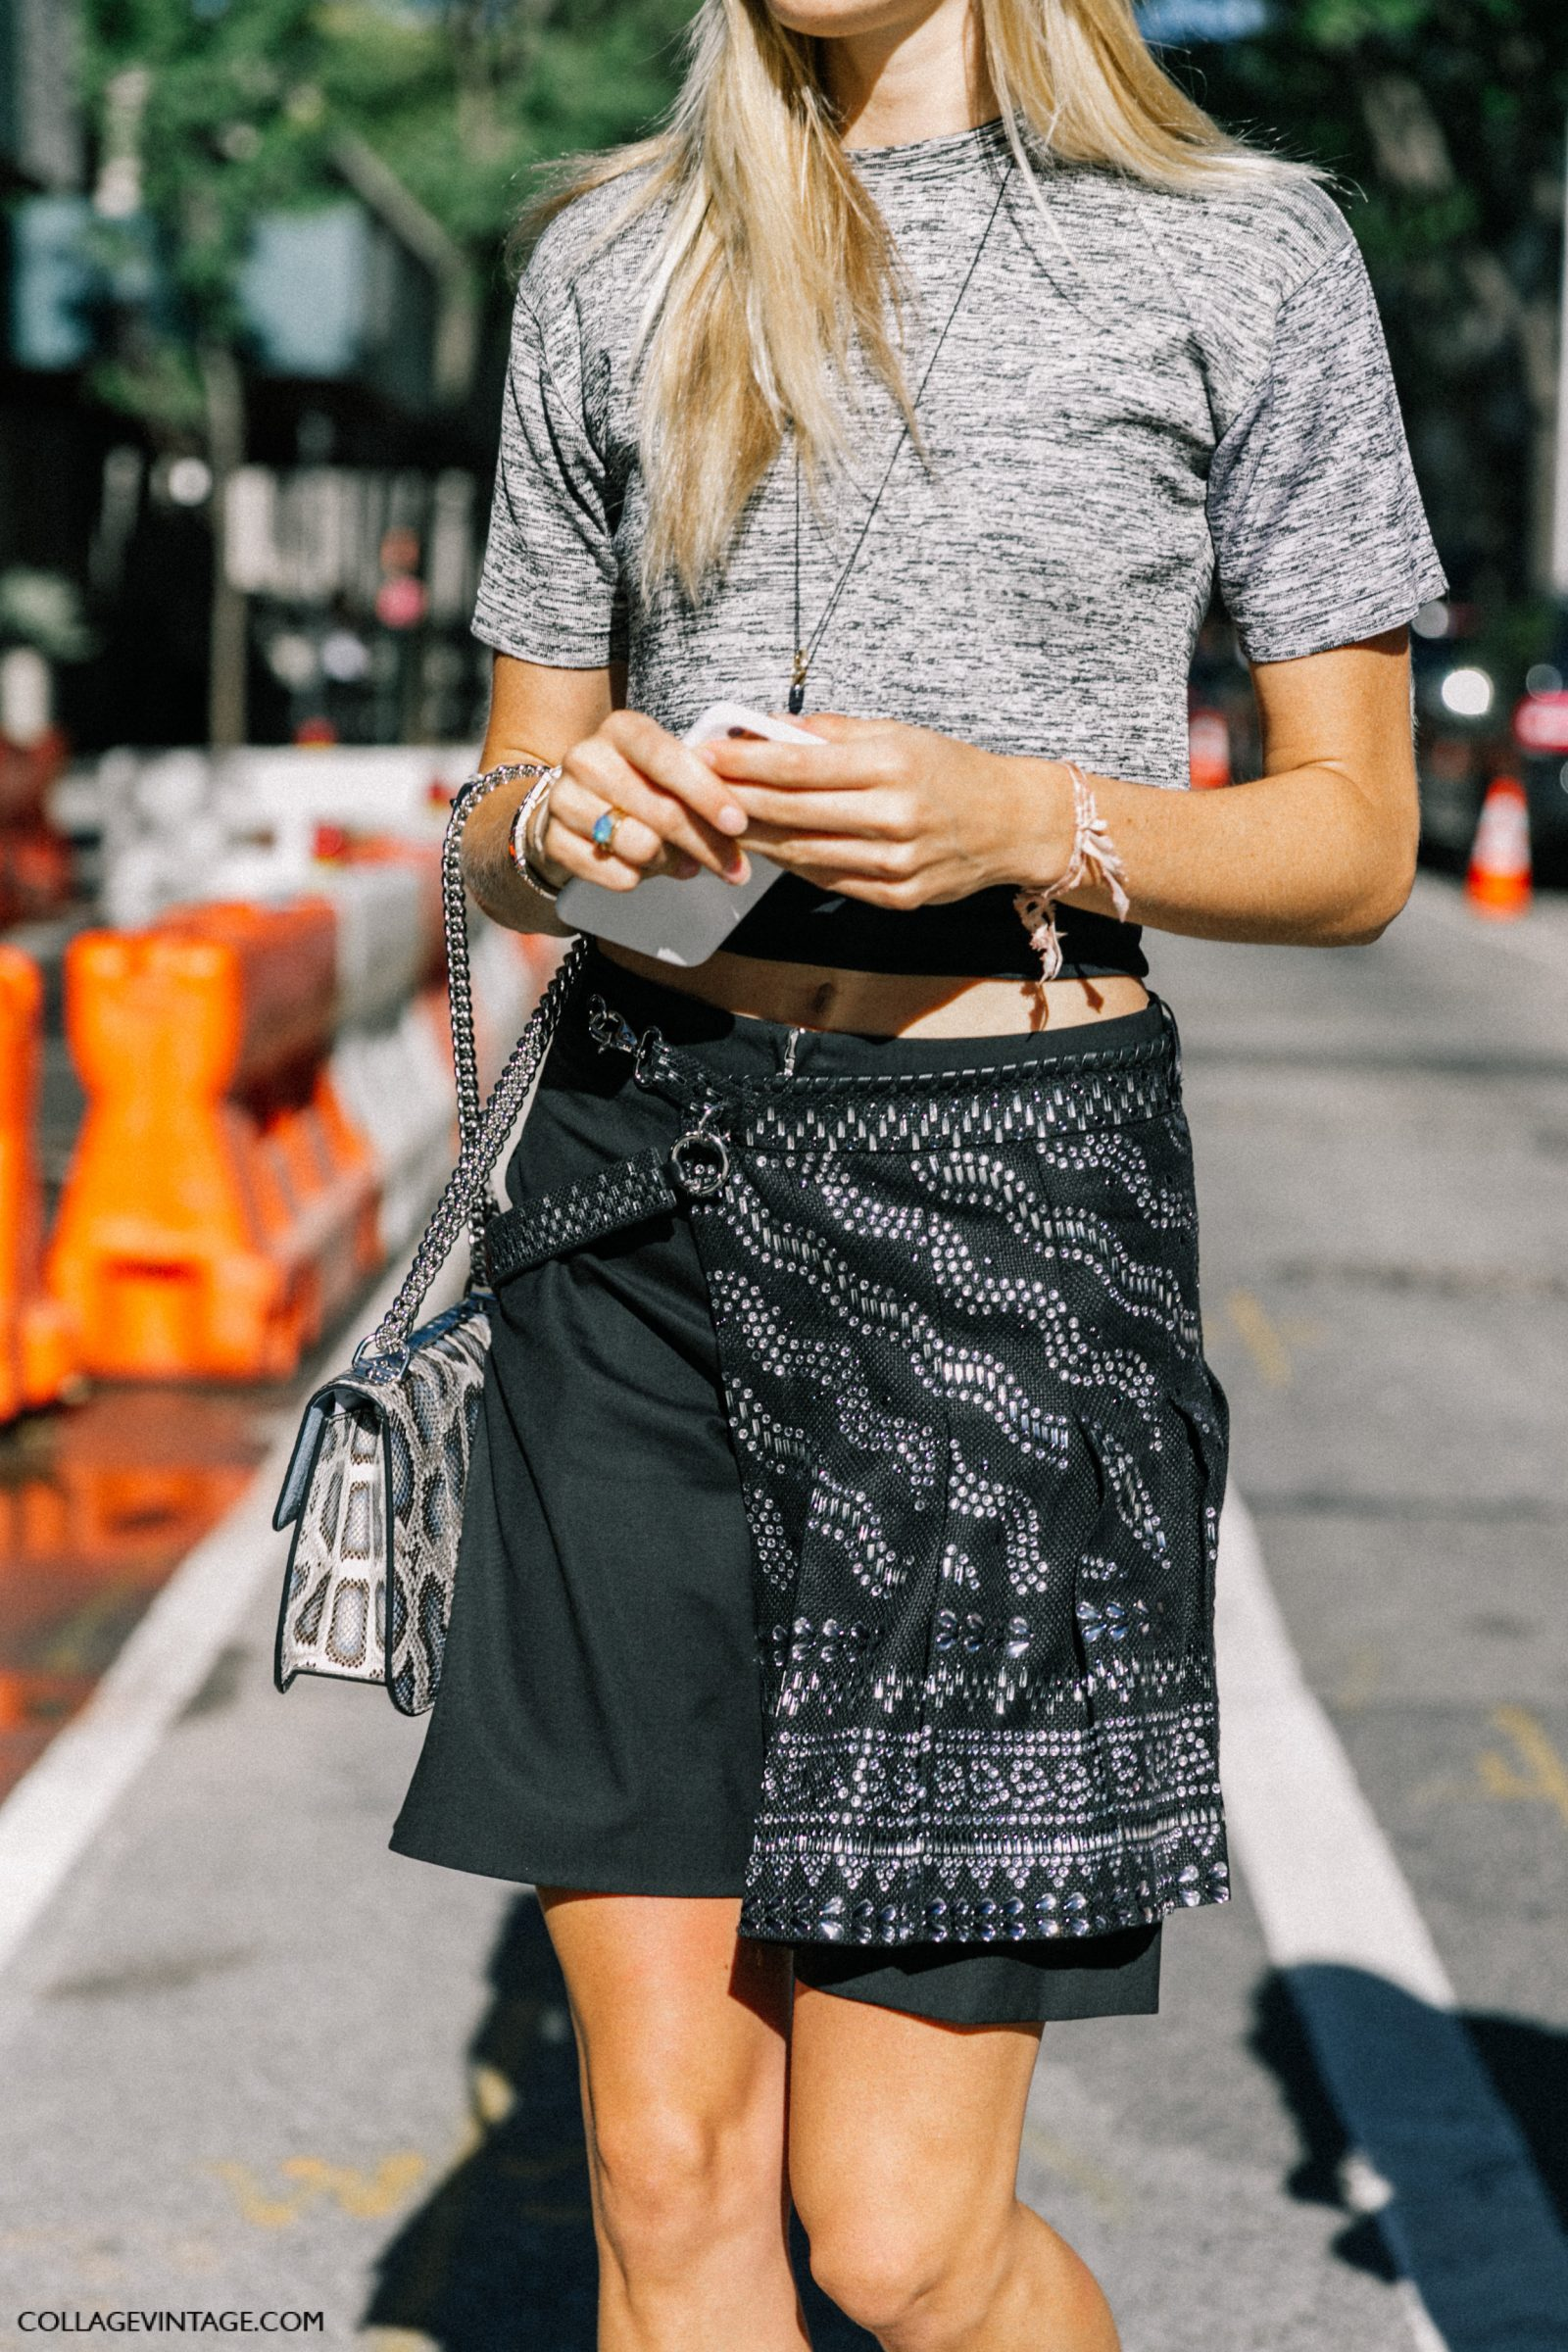 nyfw-new_york_fashion_week_ss17-street_style-outfits-collage_vintage-vintage-phillip_lim-the-row-proenza_schouler-rossie_aussolin-13